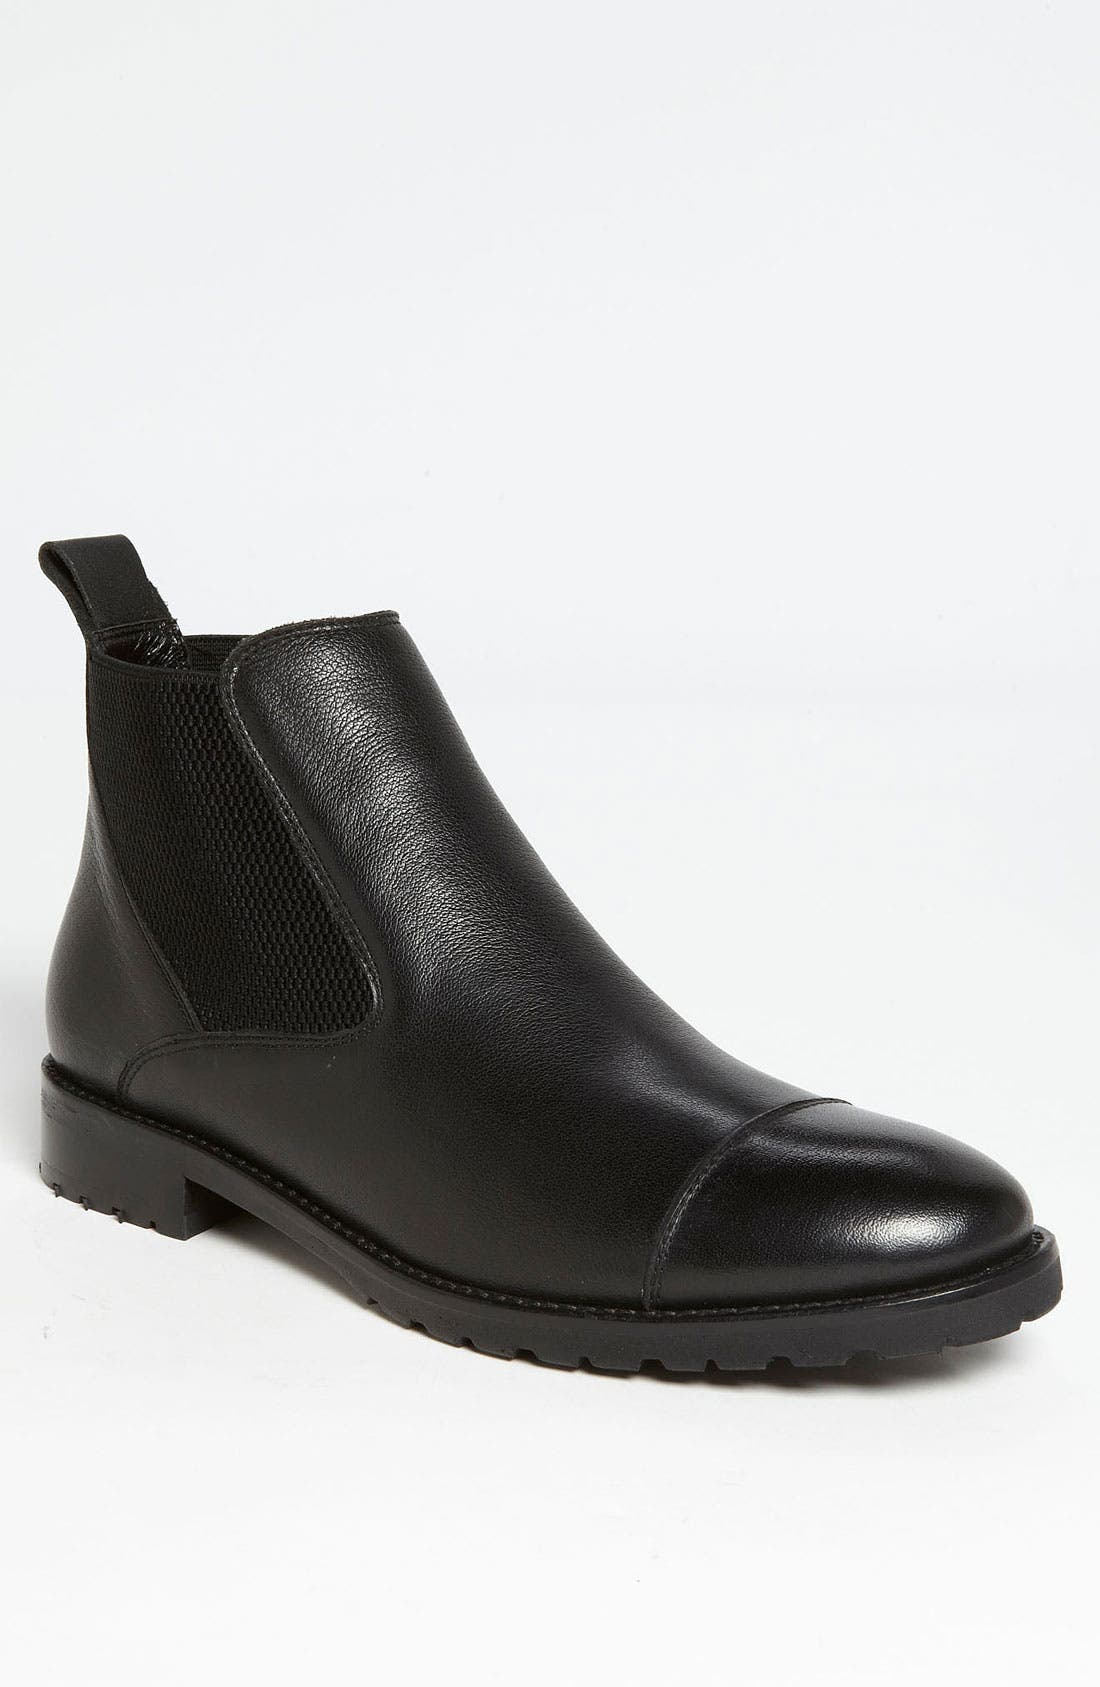 Main Image - Maison Forte 'Carlos' Chelsea Boot